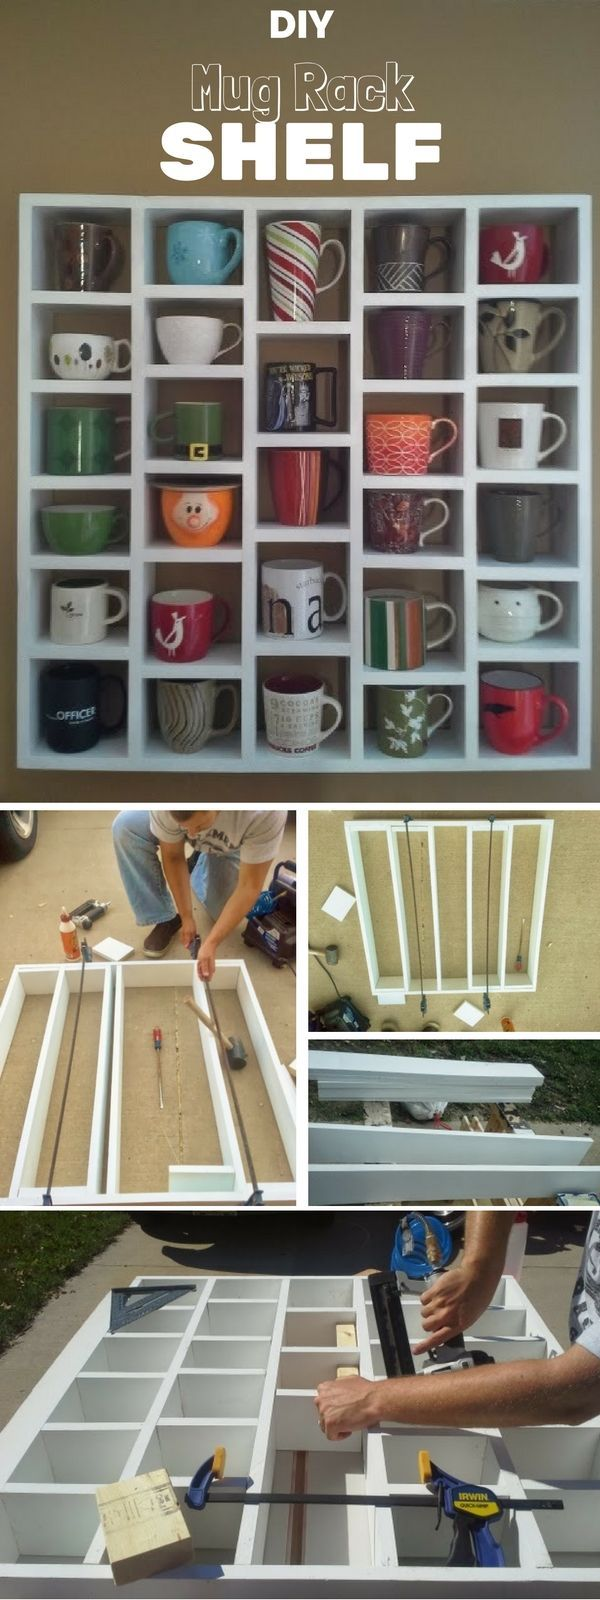 Check out the tutorial: #DIY Mug Rack Shelf /istandarddesign/